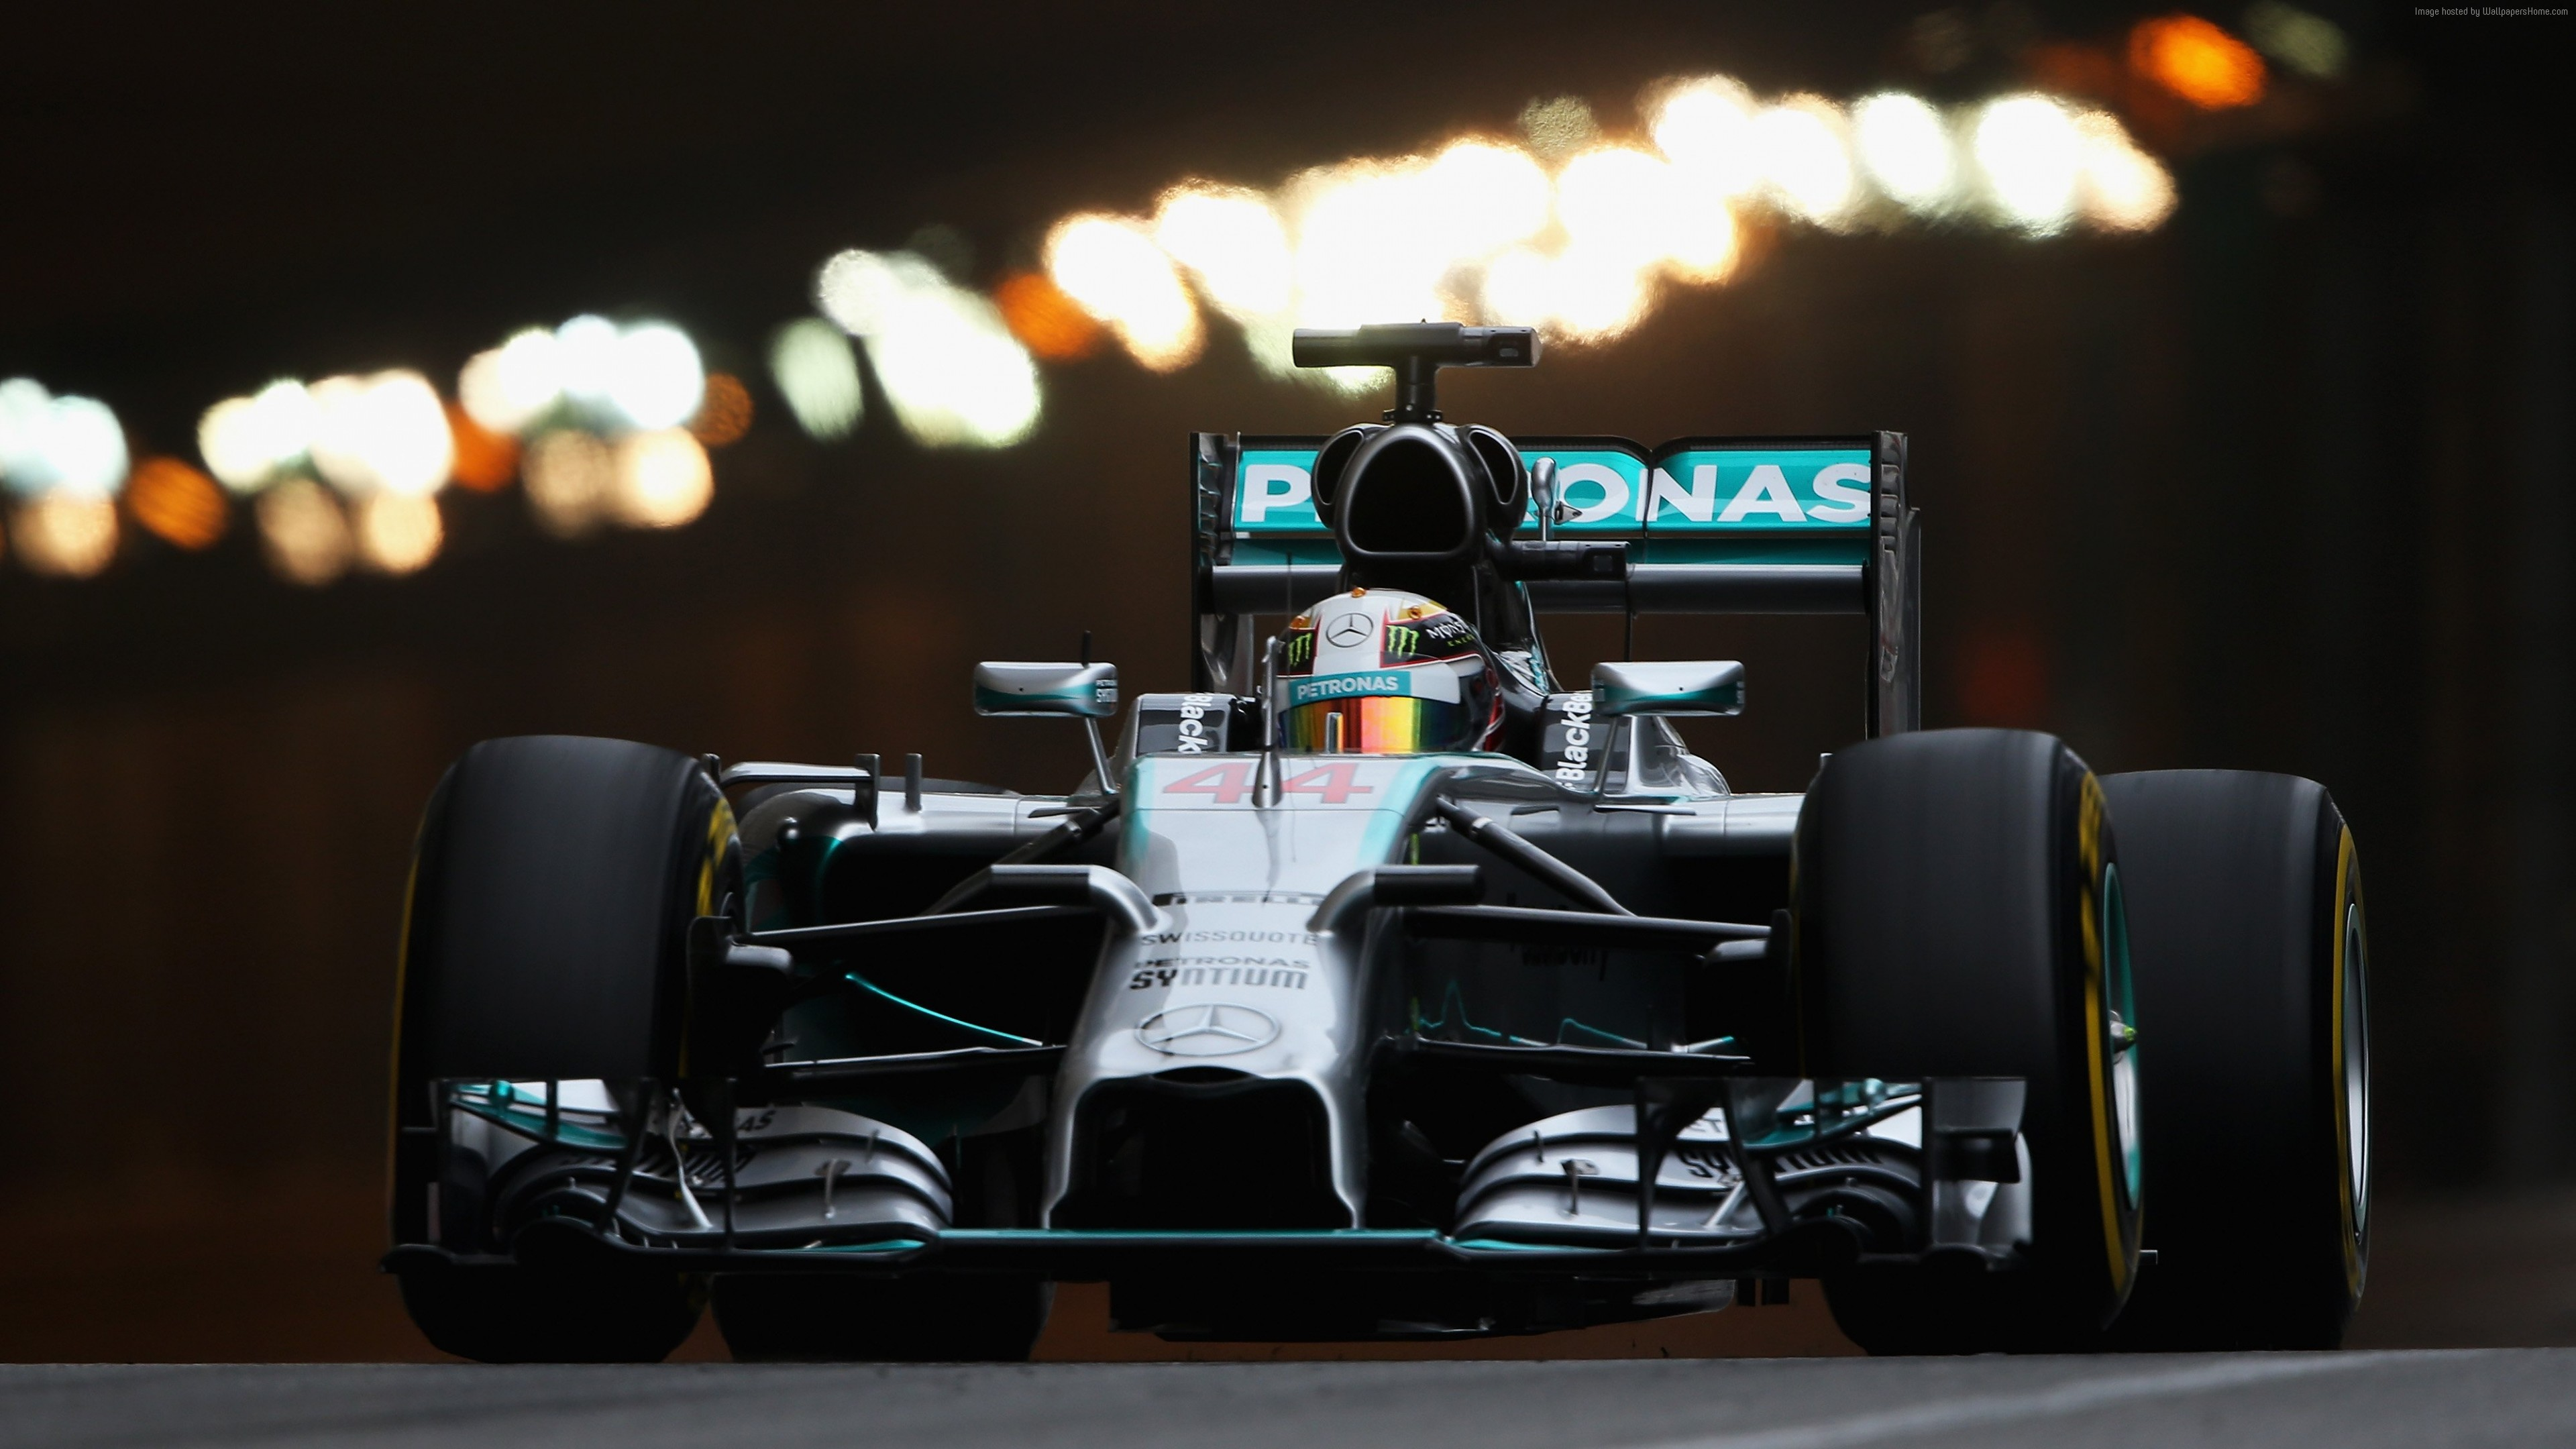 Wallpaper Mercedes-Benz, Formula 1, F1, Lewis Hamilton, helmet, specs, sports car, racing, Sport